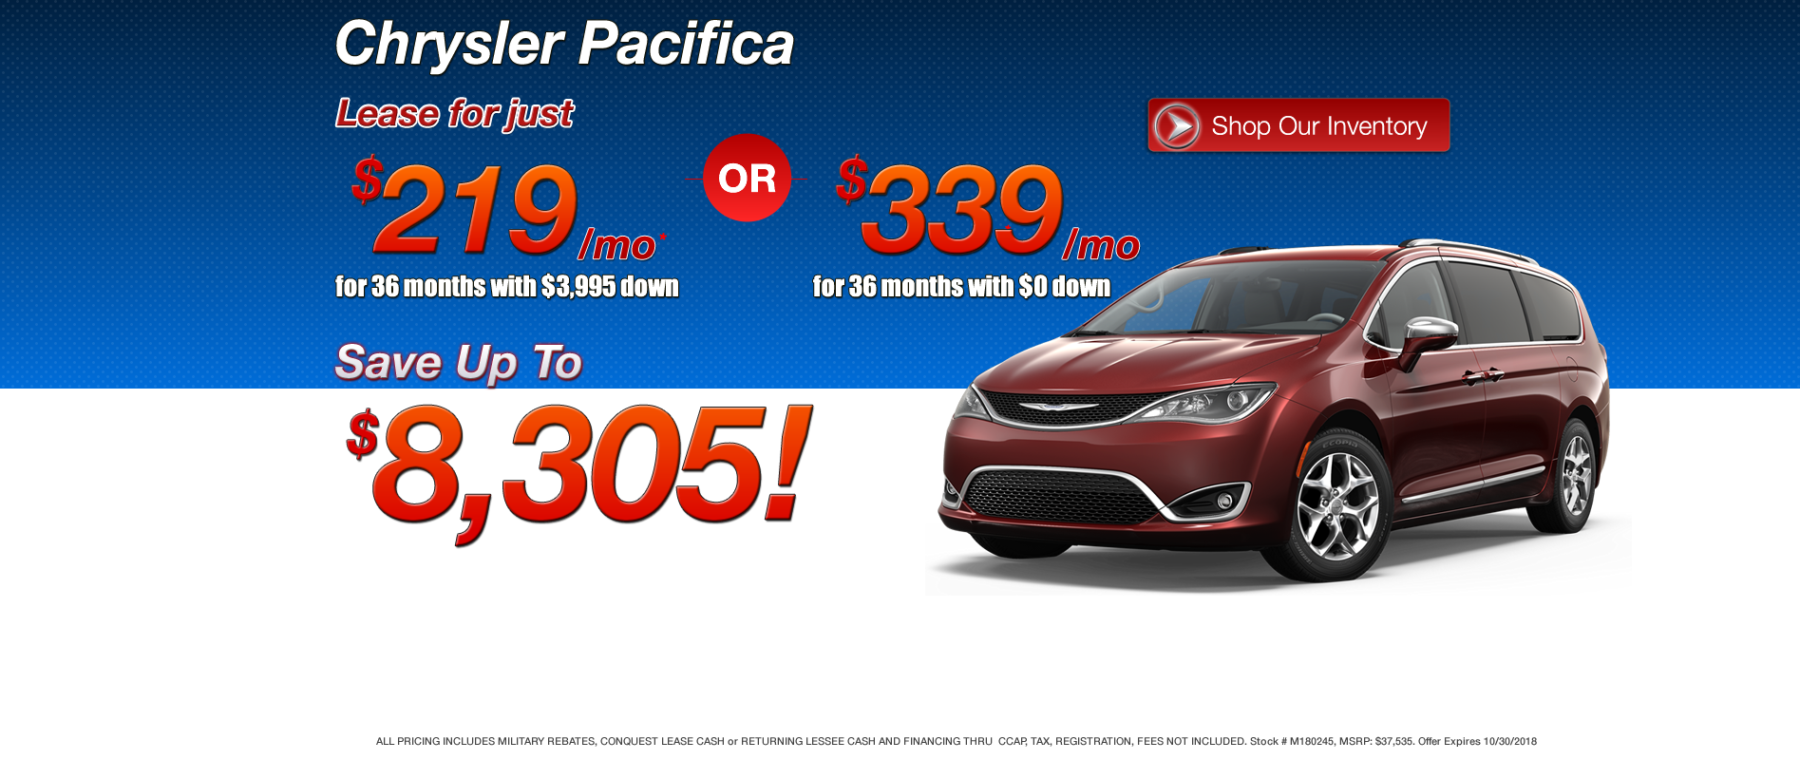 Best Chrysler Pacifica Lease Deals in MA